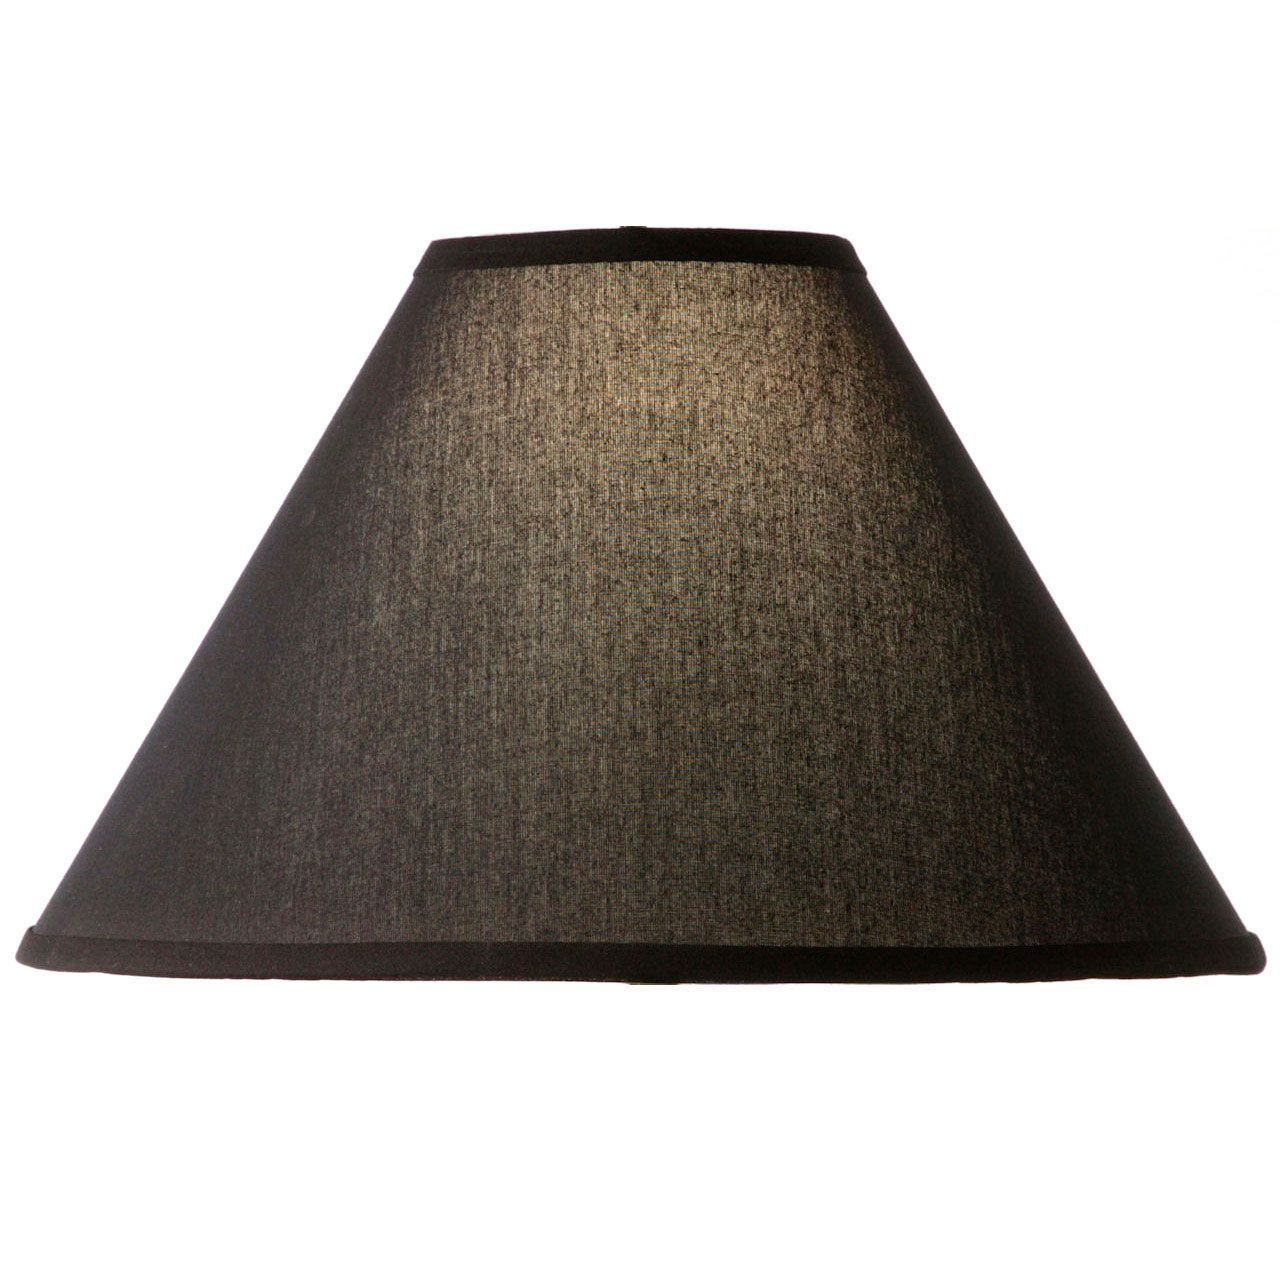 Fascinating Black Lamp Shades from Cloth Material Used in Bright Table and Floor Lamps